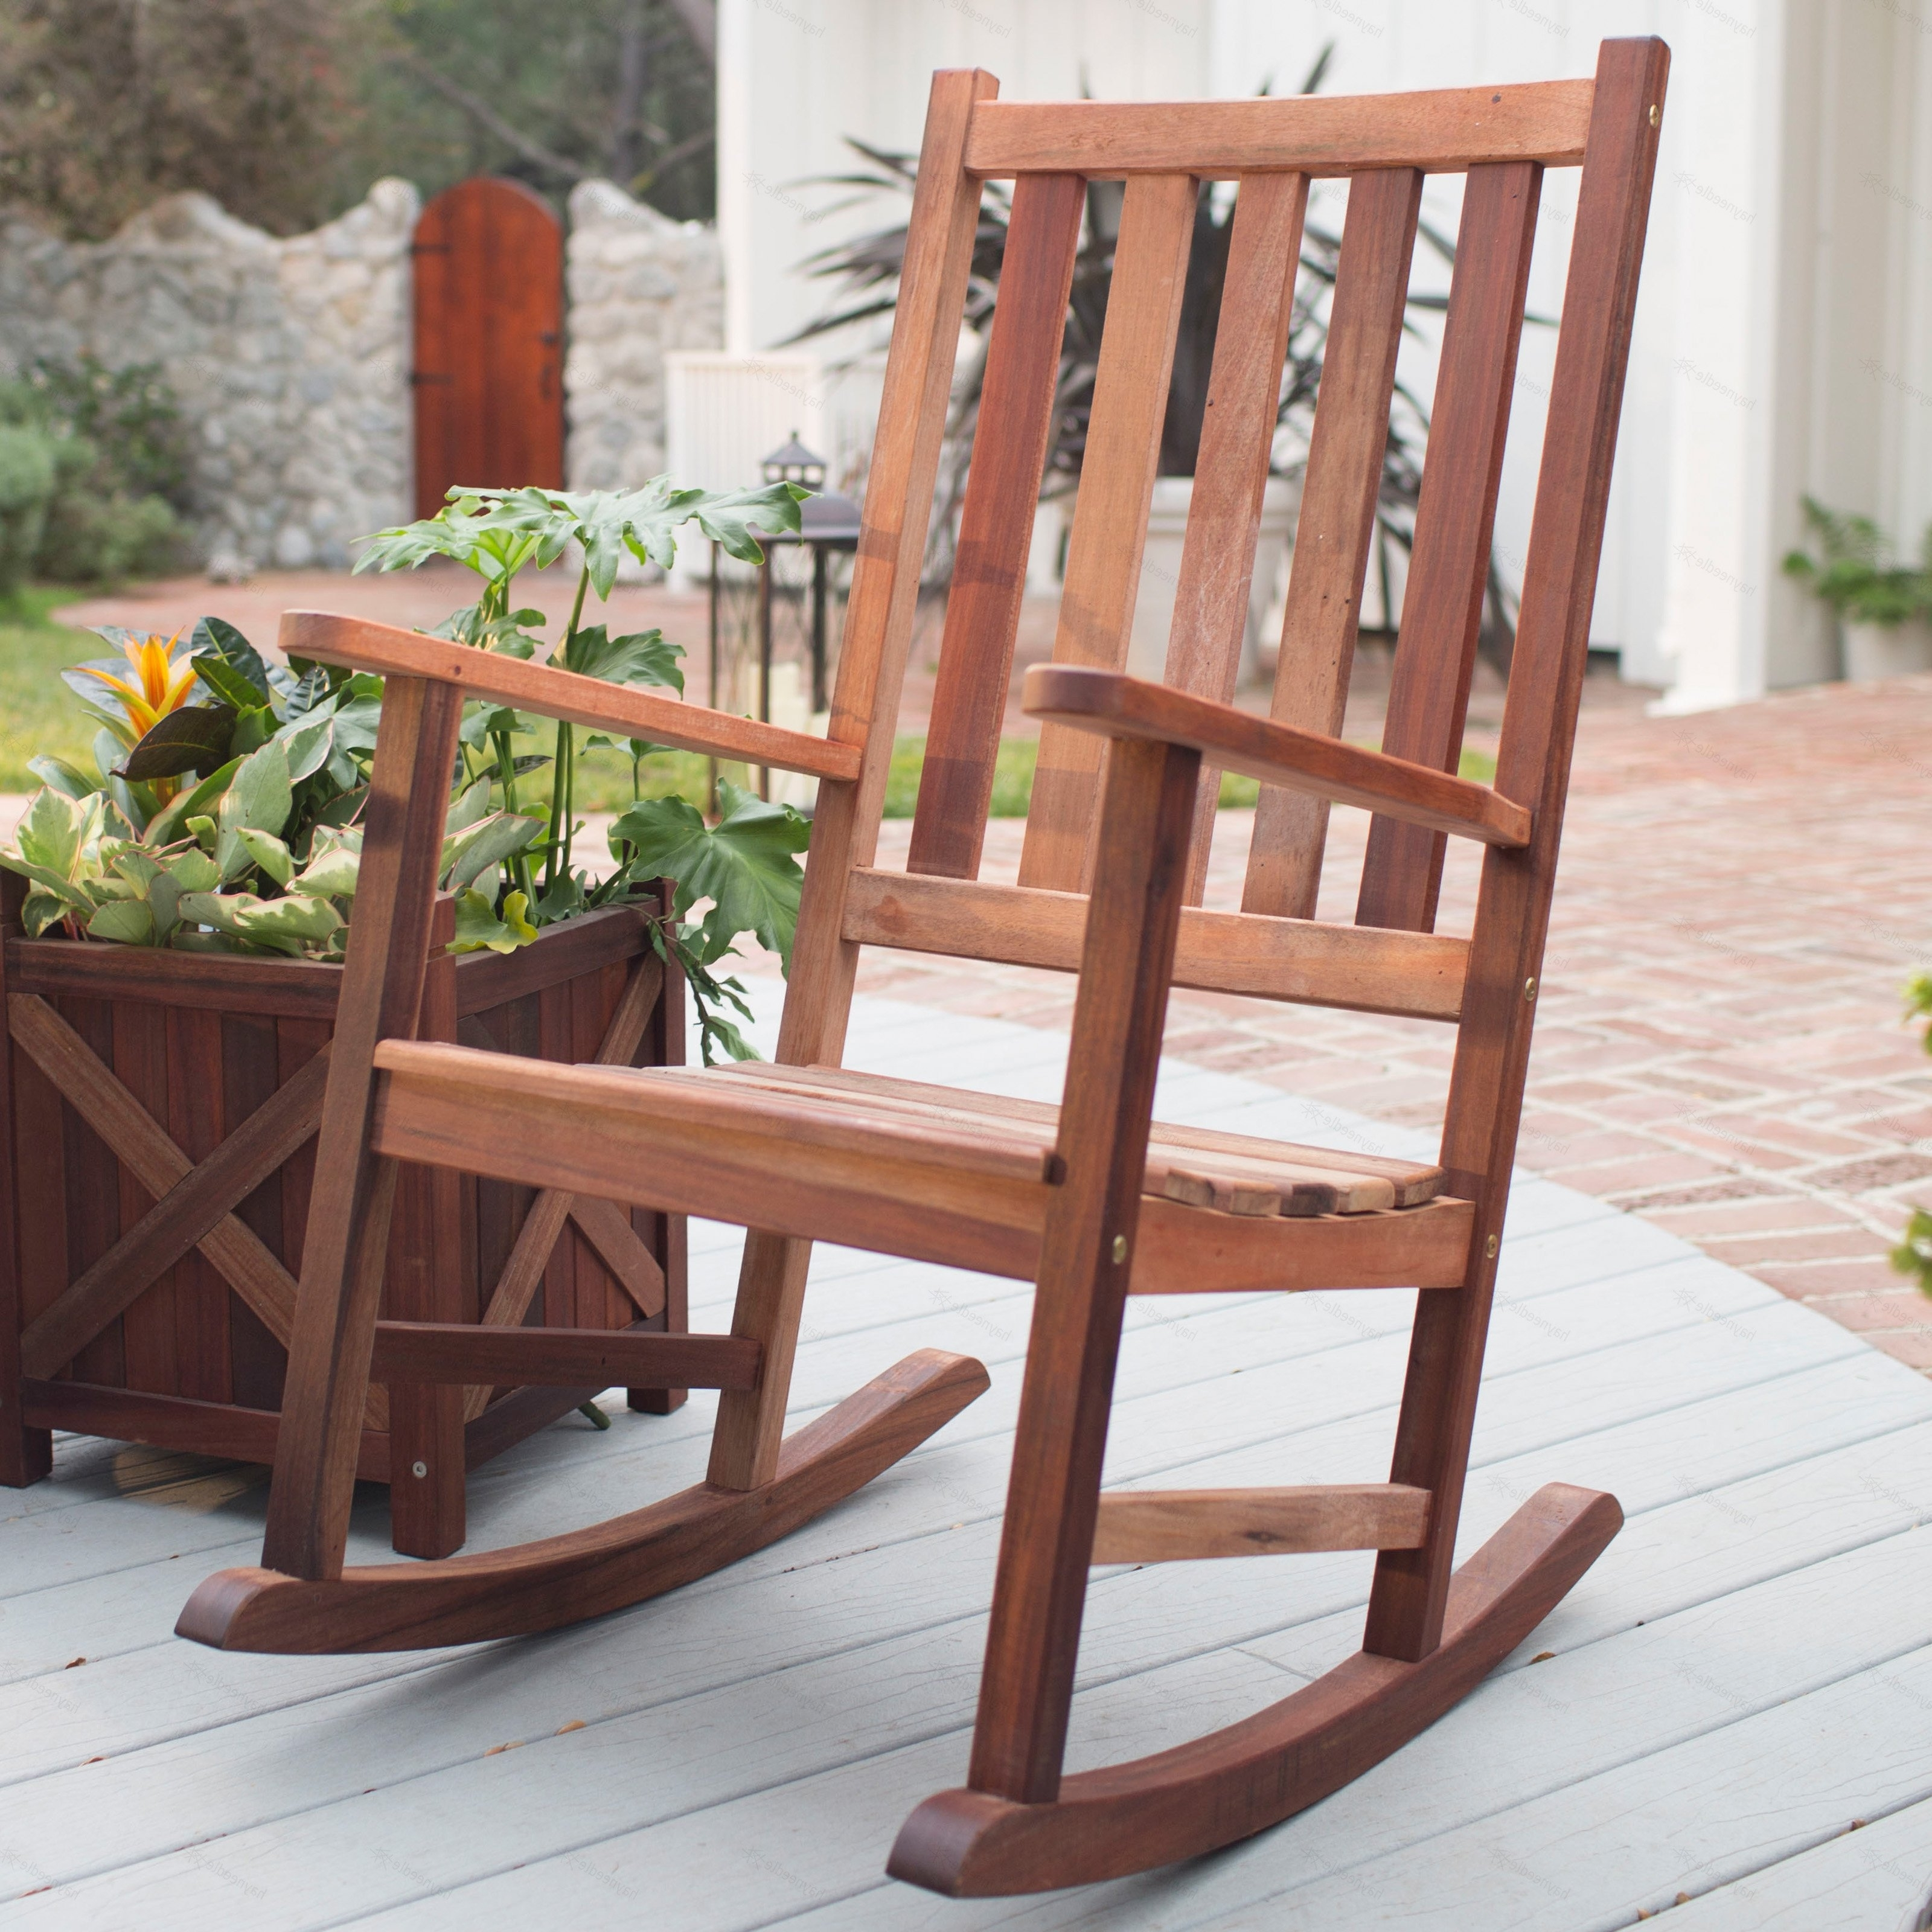 Widely Used Outside Rocking Chairs Popular Decorating Black Wicker Rocker For Outside Rocking Chair Sets (View 15 of 15)